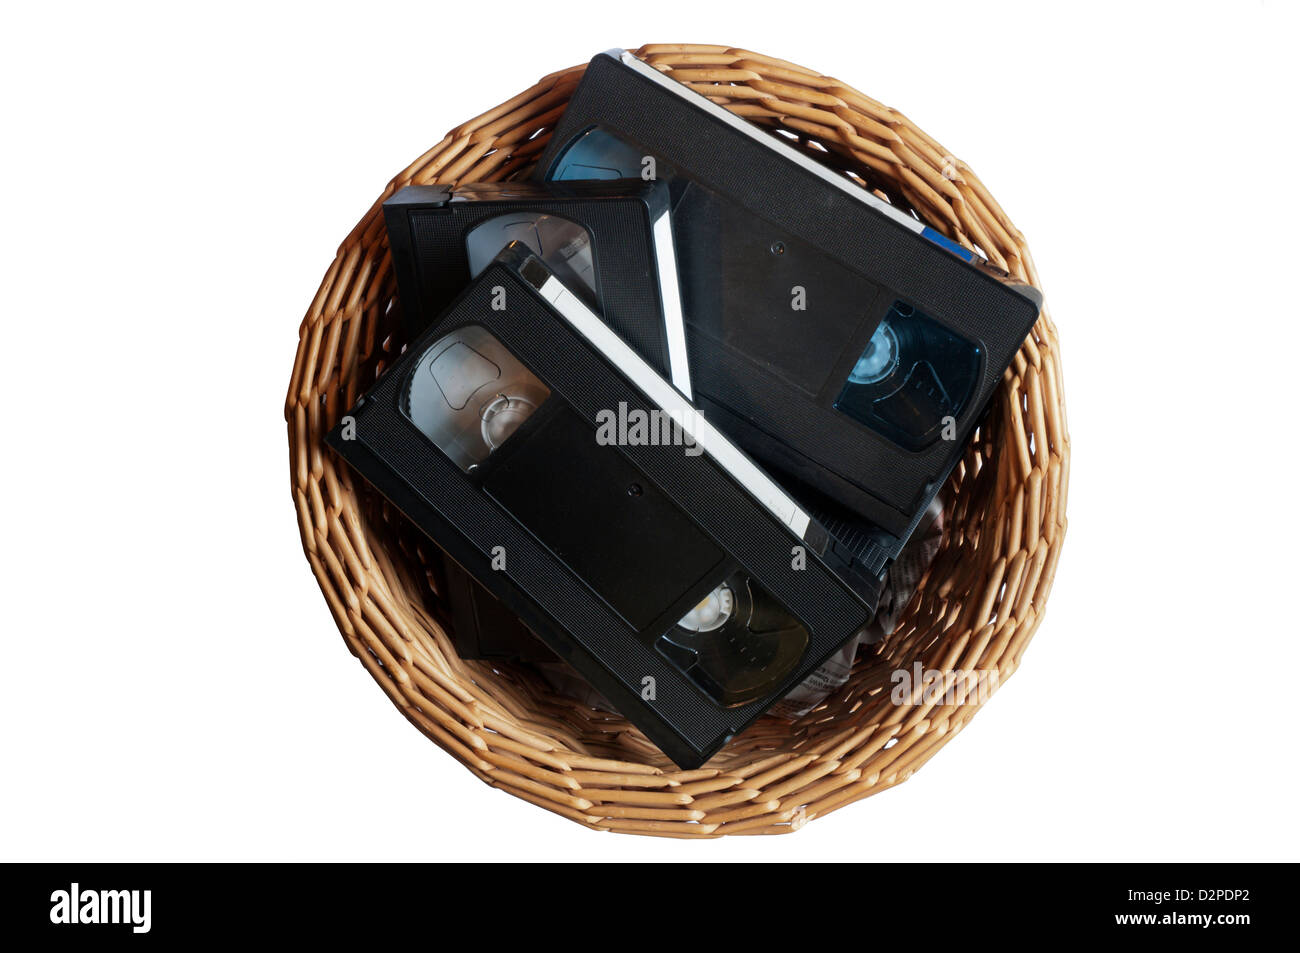 Video tape cassettes thrown away in a waste paper basket. - Stock Image